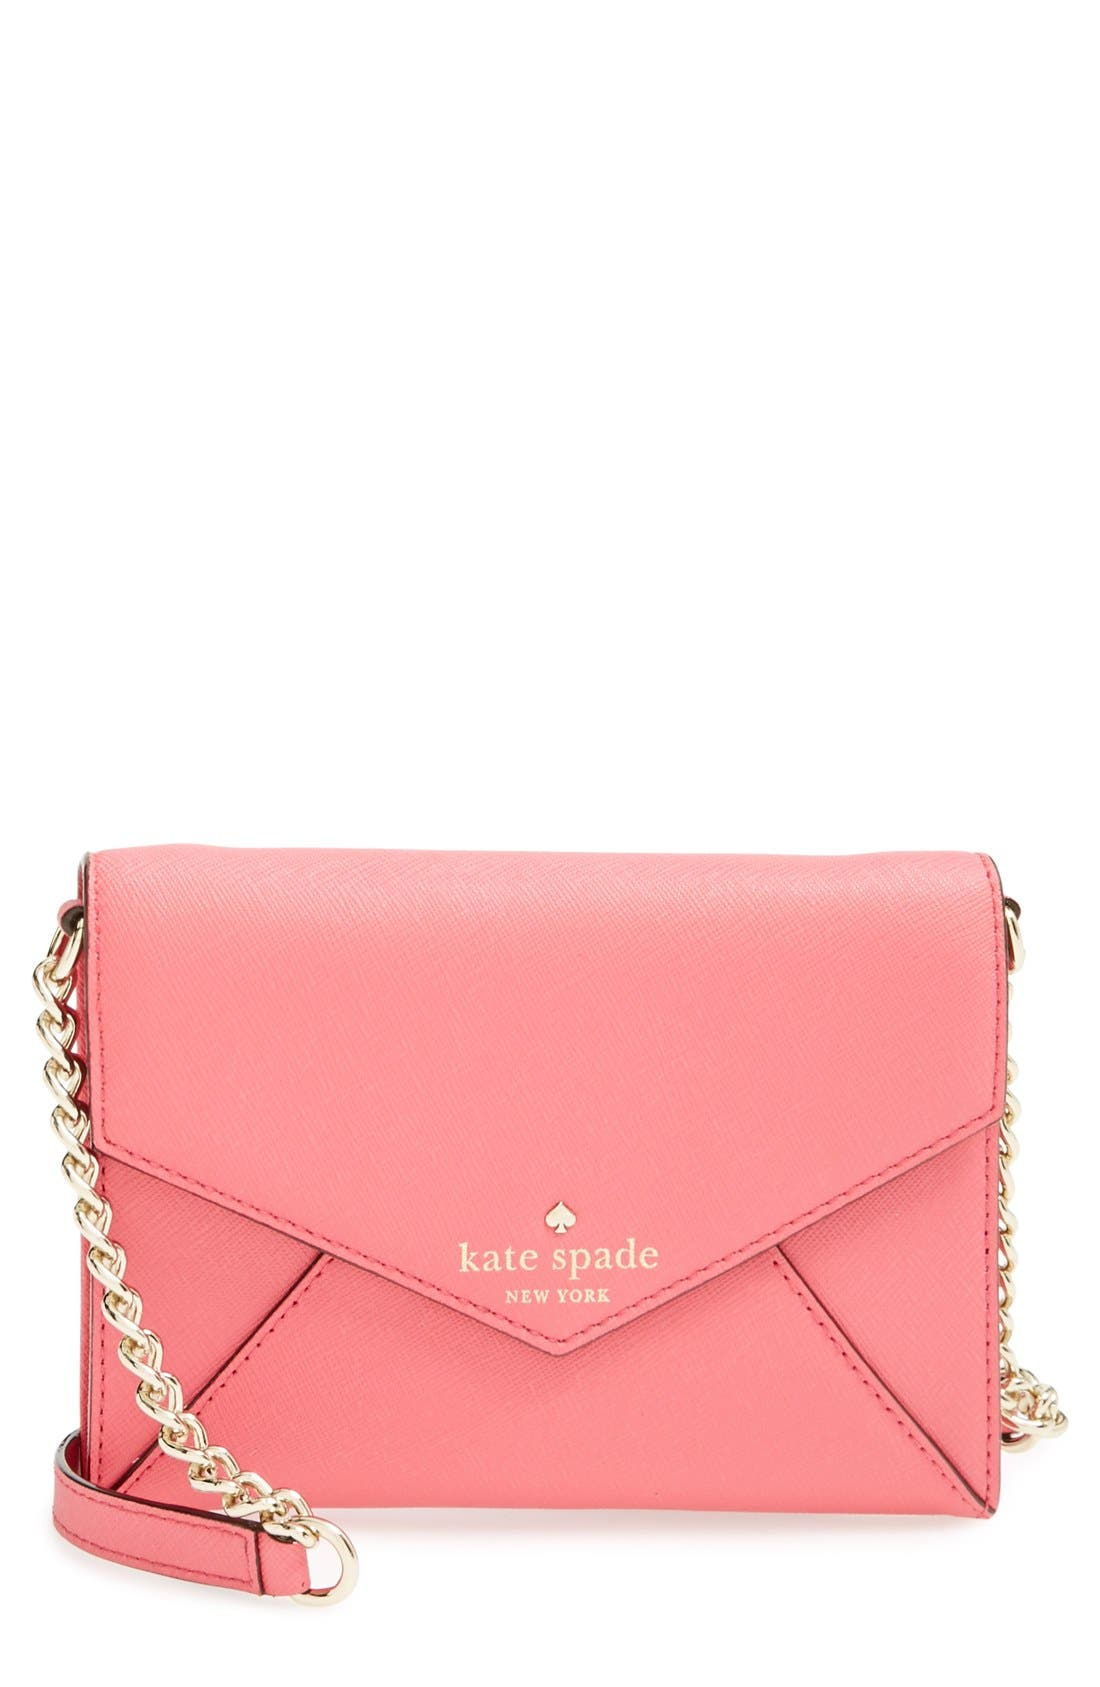 'cedar street - monday' crossbody bag,                             Main thumbnail 1, color,                             Cabaret Pink